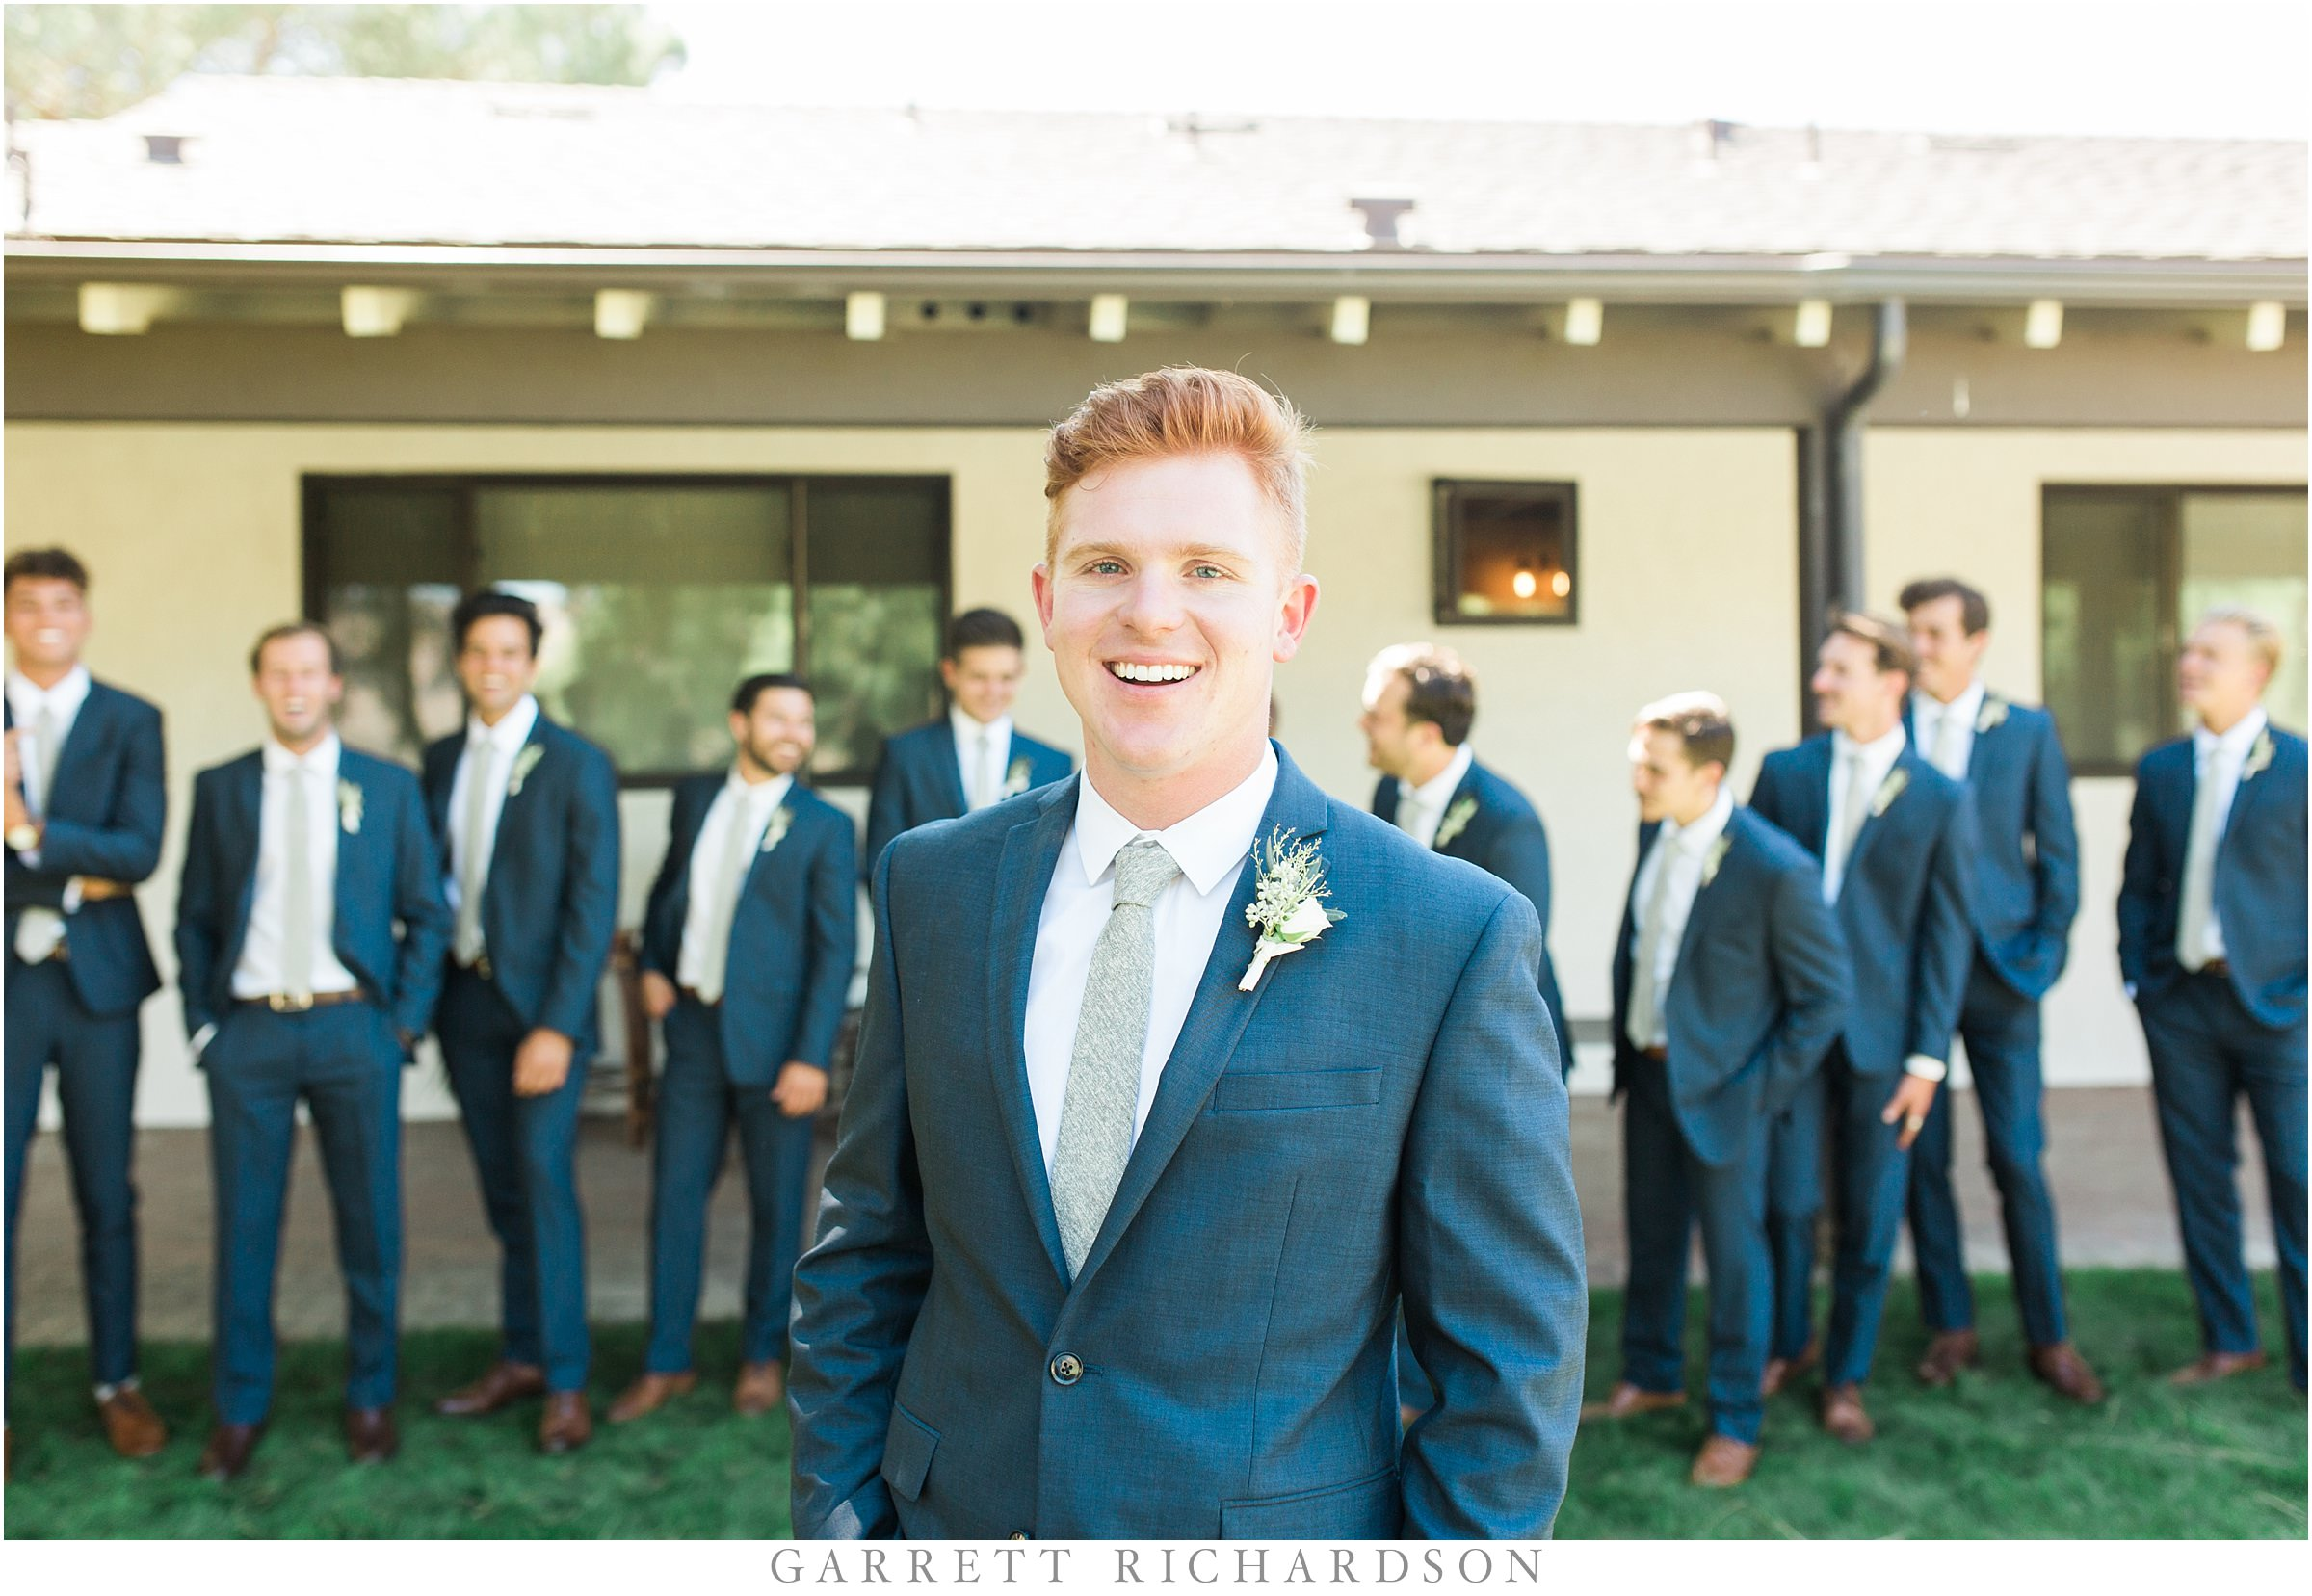 Delighted Groom And Best Man Suits Images - Wedding Ideas ...